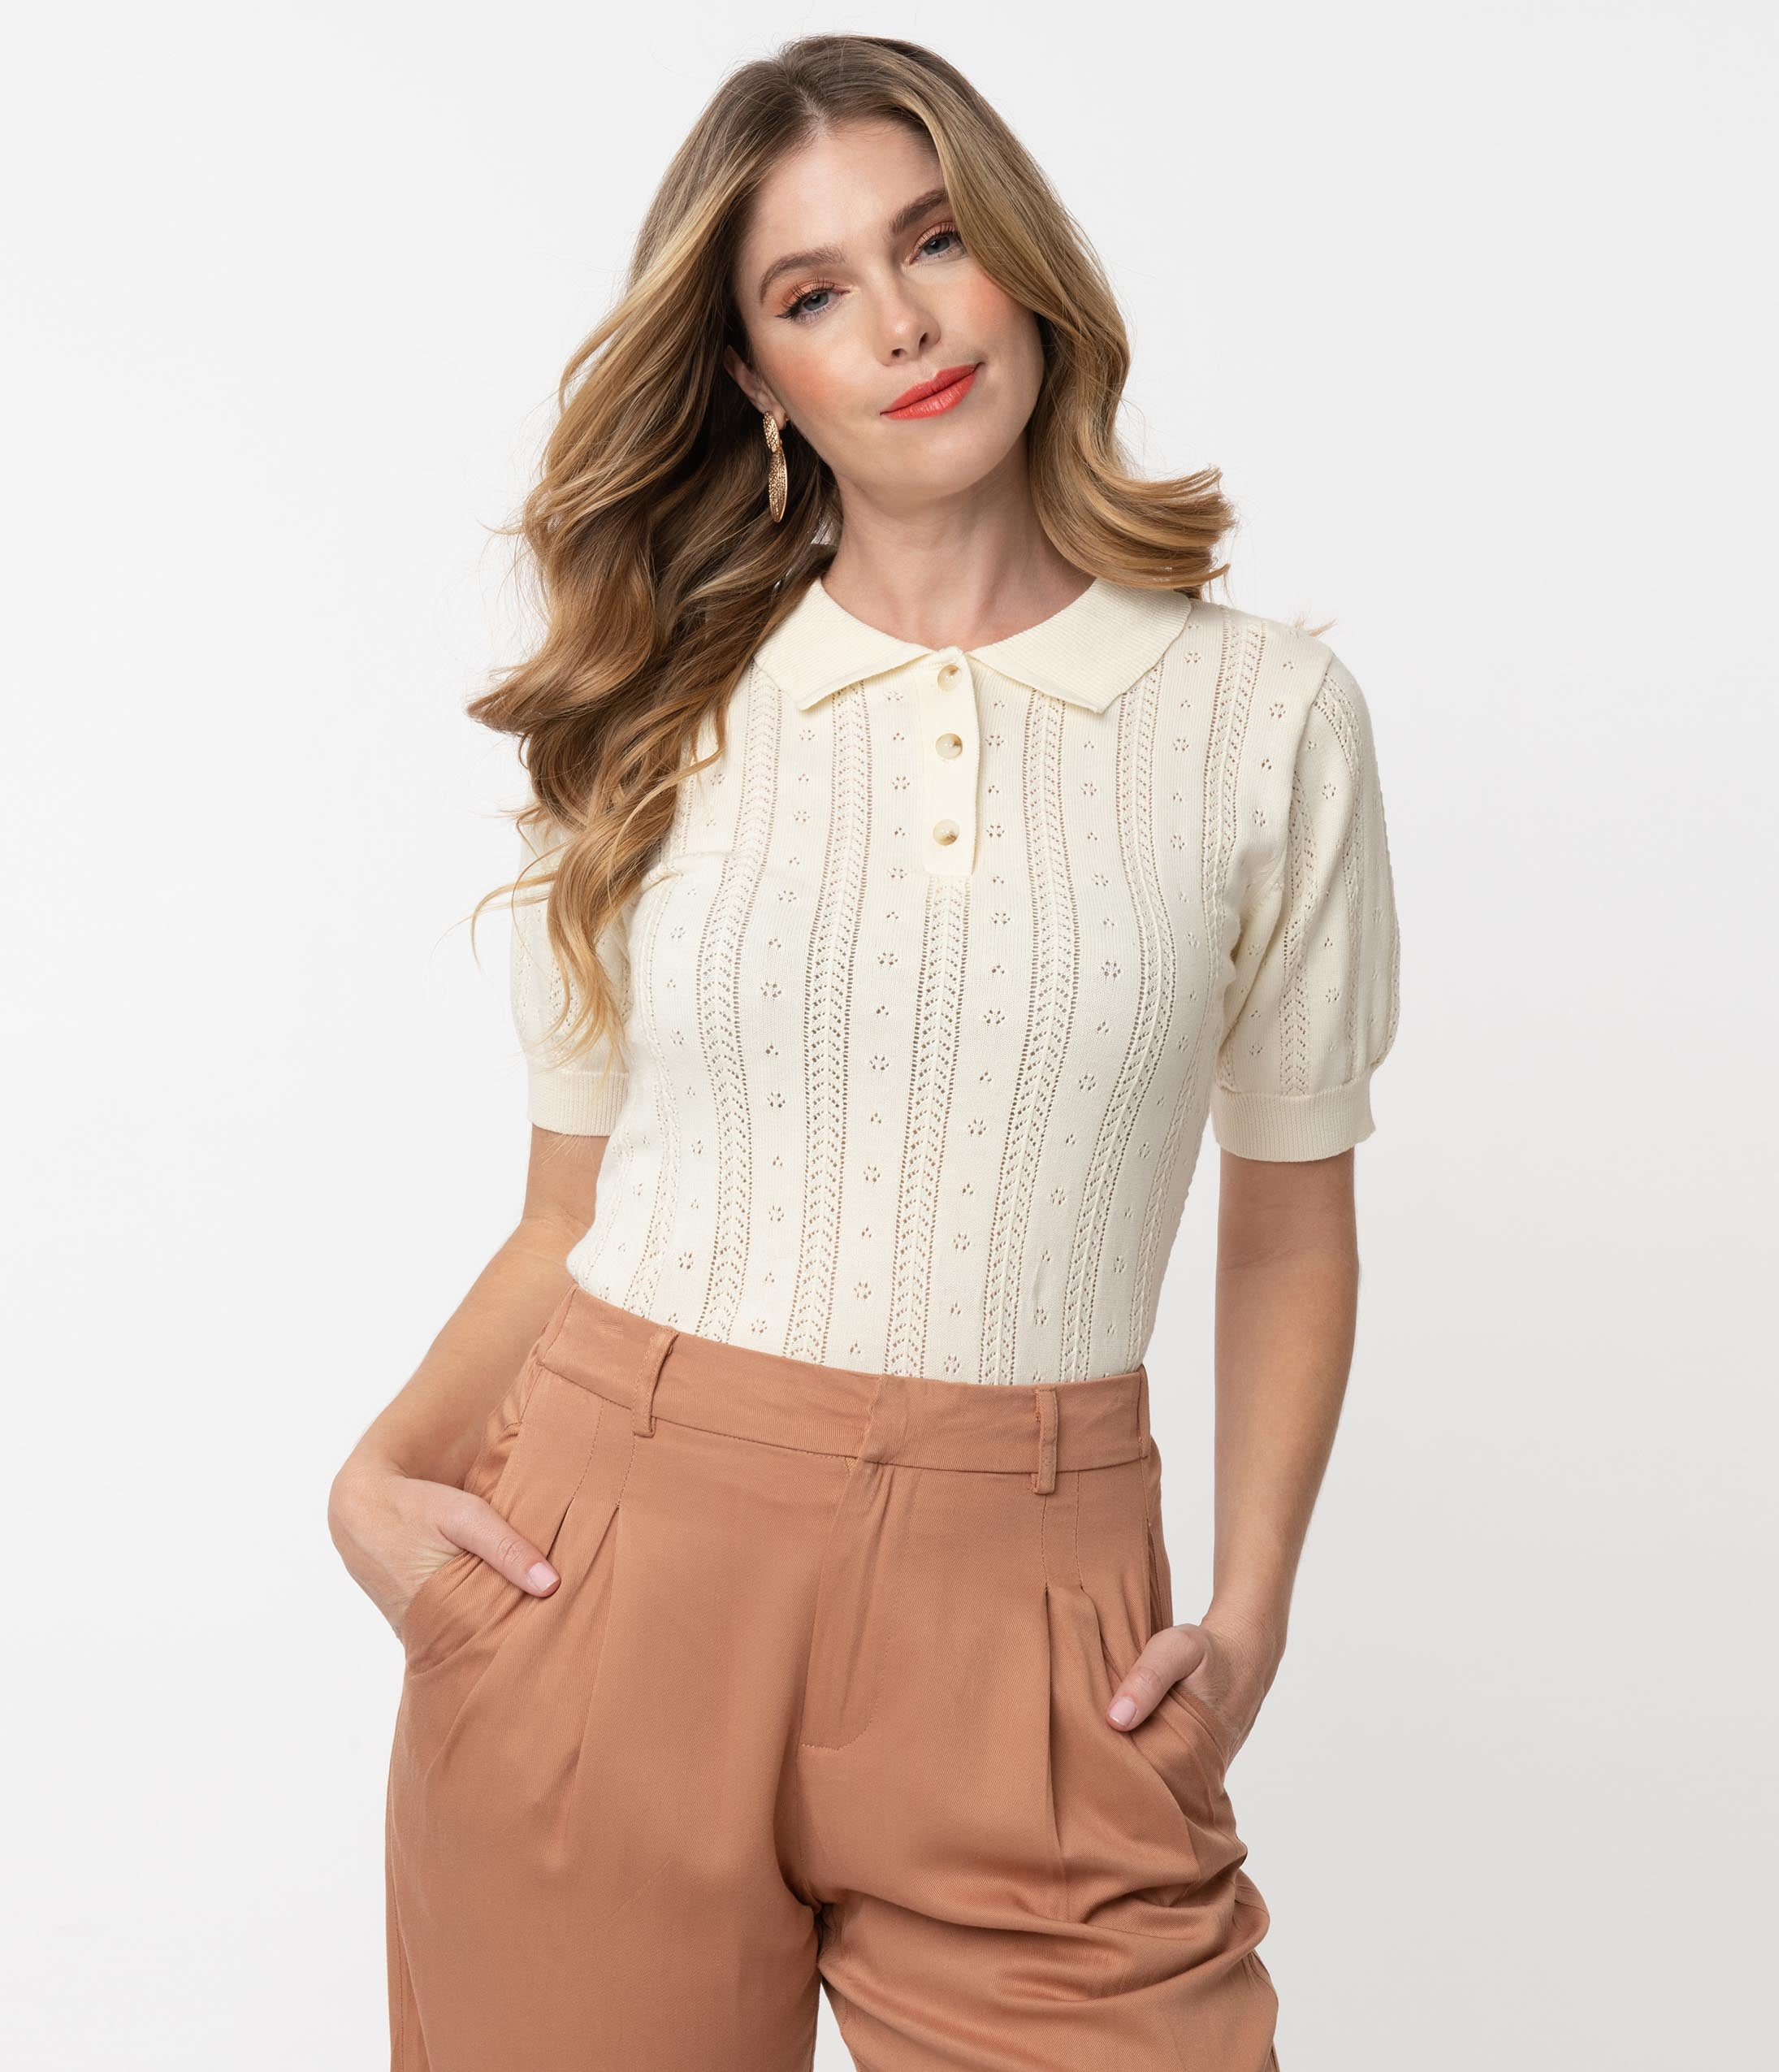 1930s Style Blouses, Shirts, Tops | Vintage Blouses 1950S Style Cream Perforated Polo Sweater Top $52.00 AT vintagedancer.com